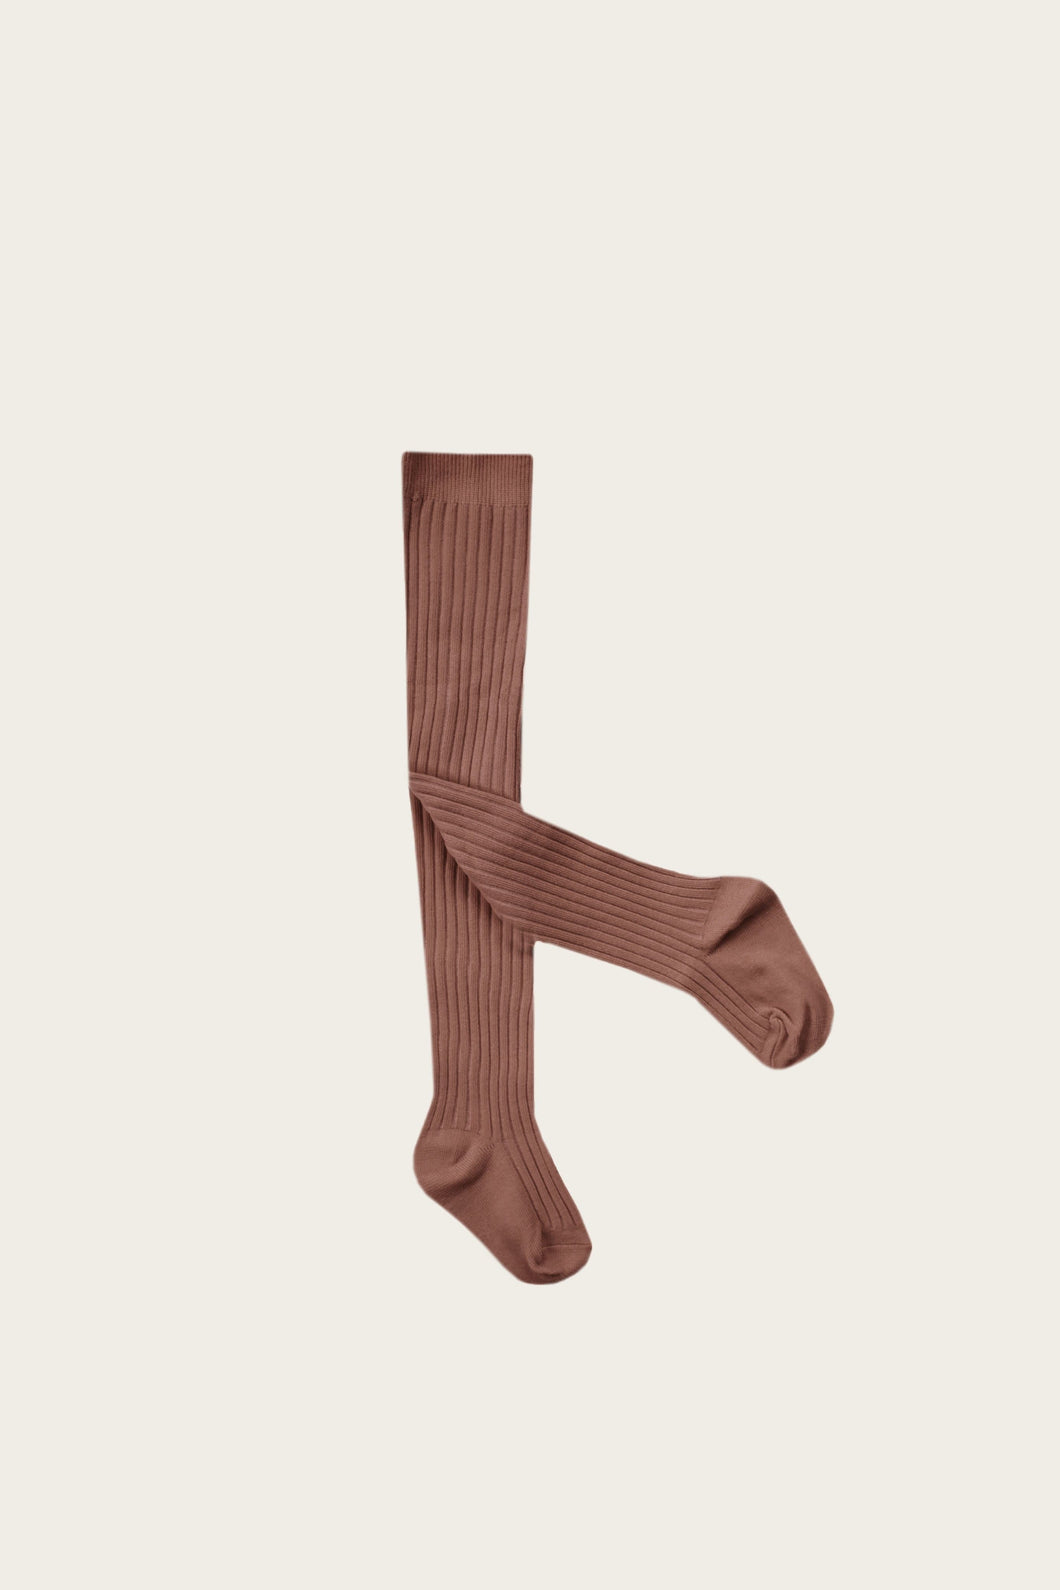 Ribbed Tights in Caramel - WildLittleFawns